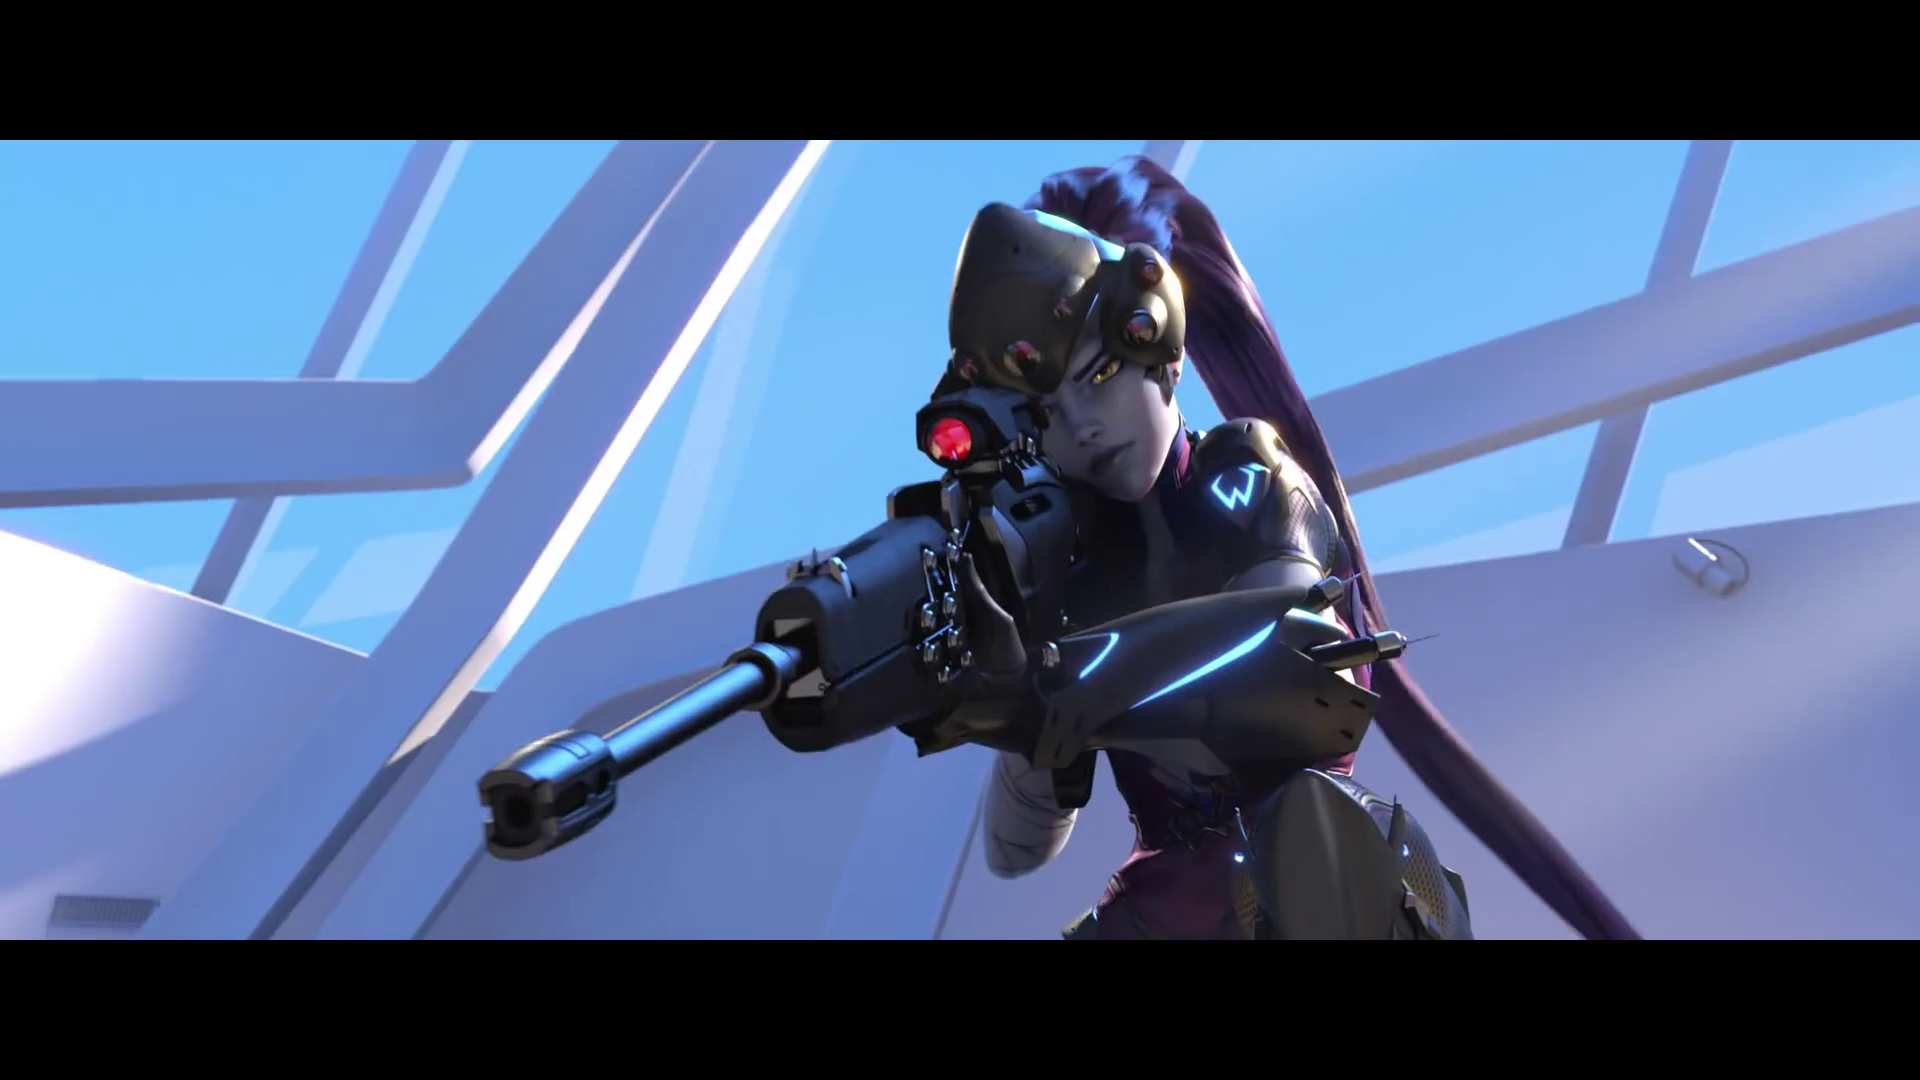 widowmaker overwatch wallpaper 1920x1080 - photo #5